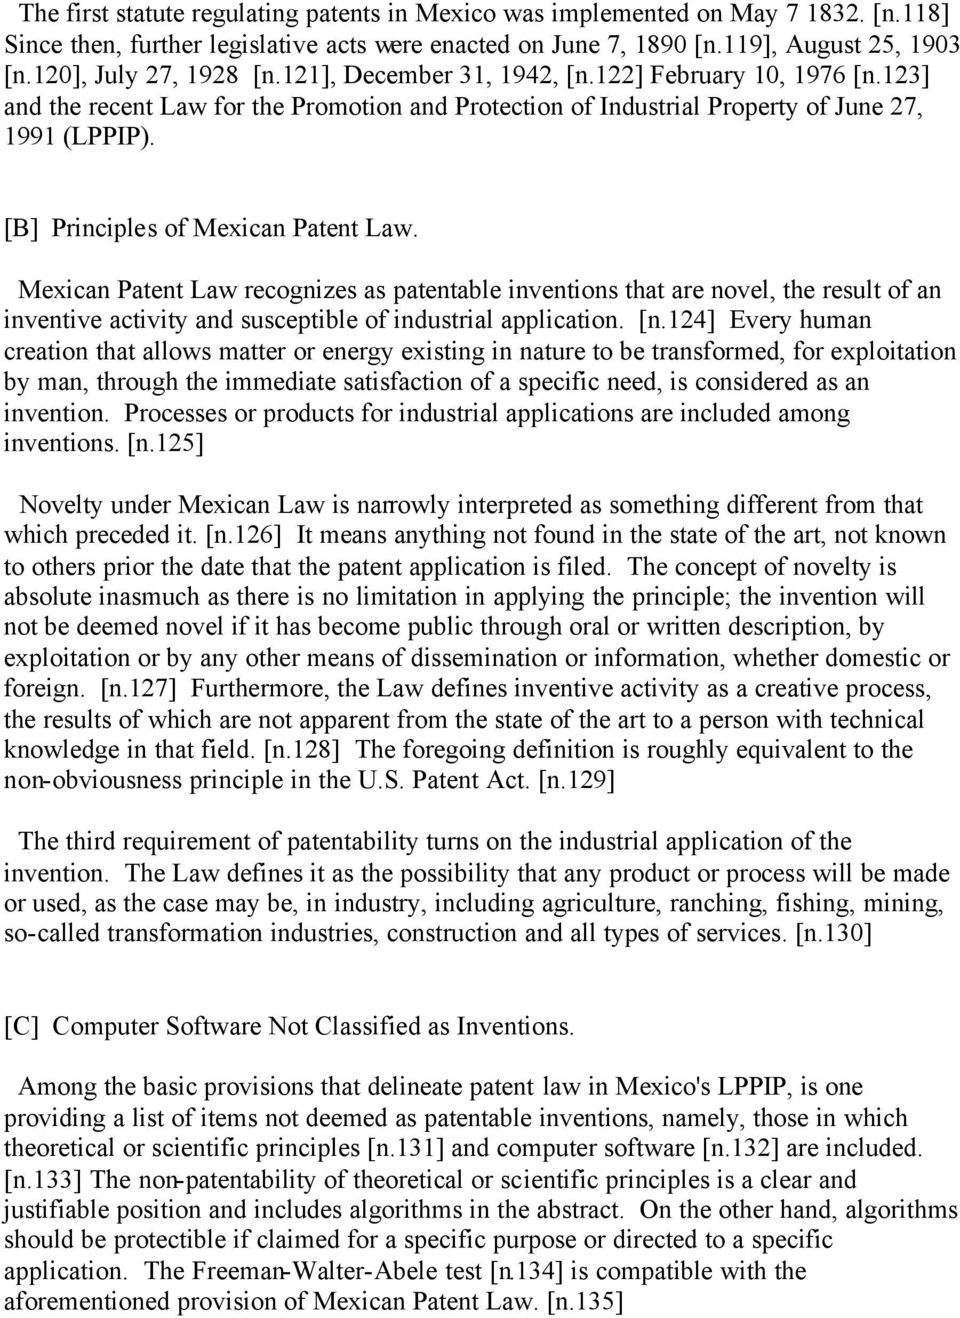 [B] Principles of Mexican Patent Law. Mexican Patent Law recognizes as patentable inventions that are novel, the result of an inventive activity and susceptible of industrial application. [n.